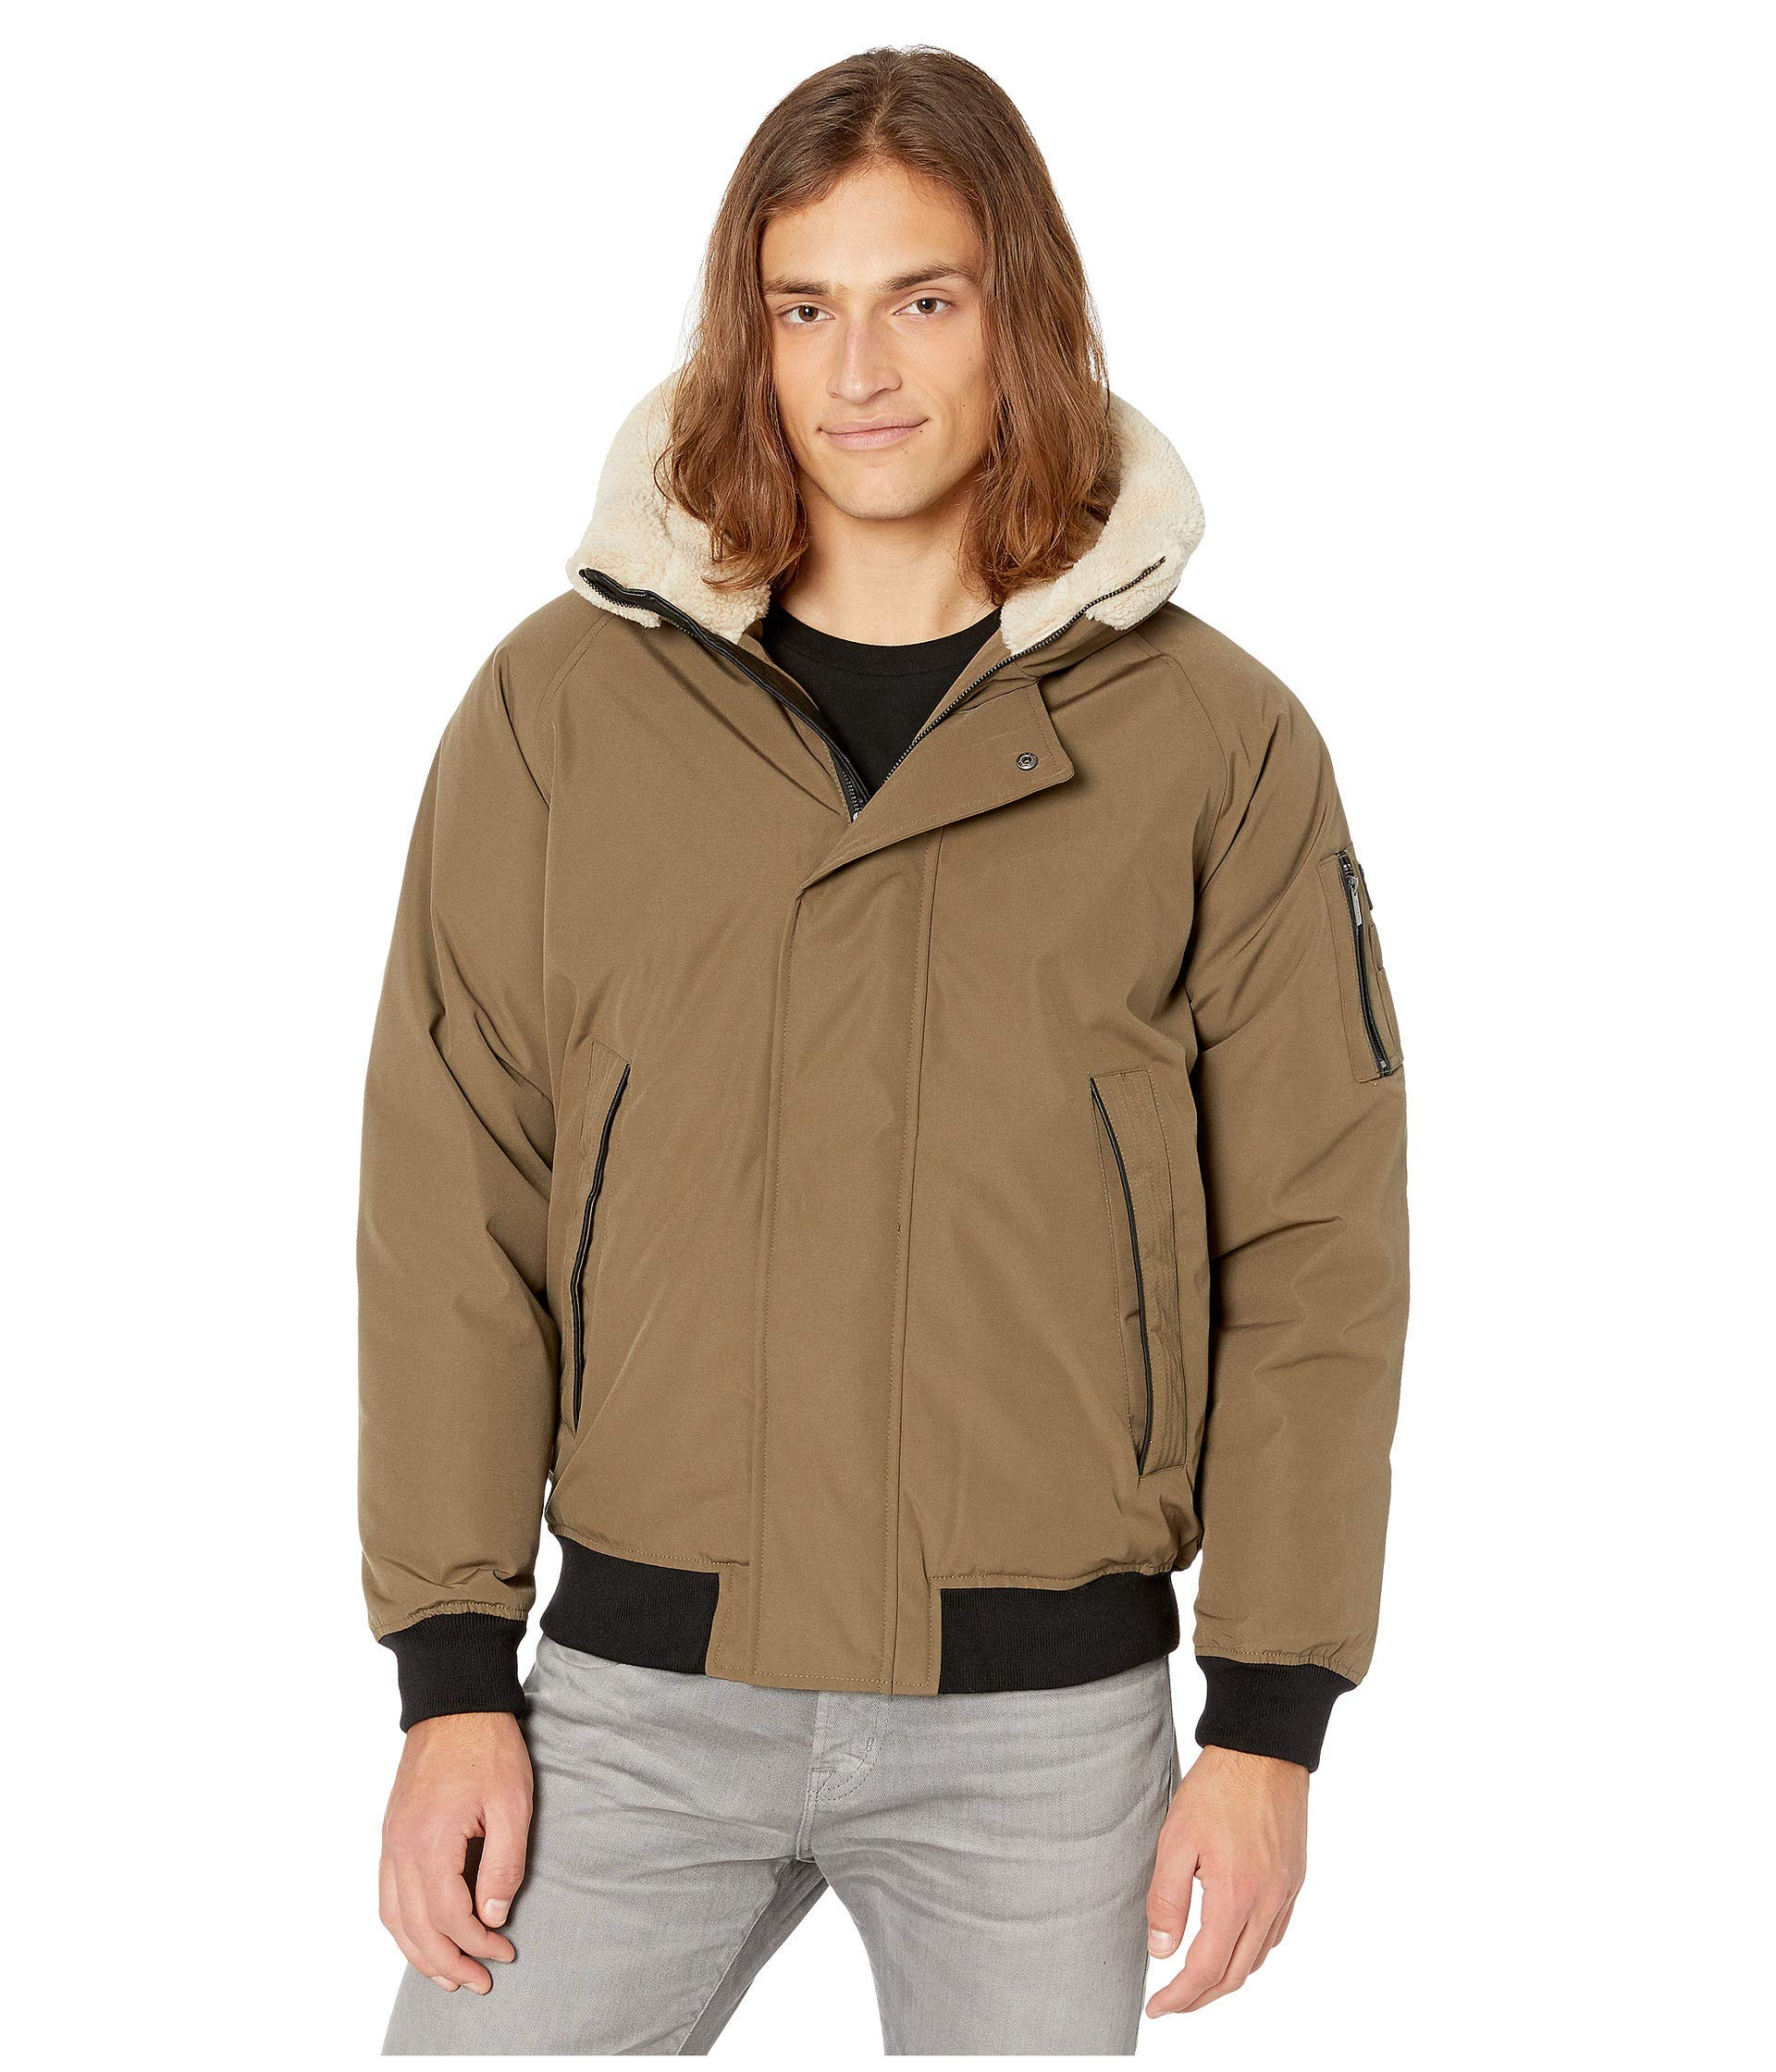 Sean John Mens Ultra Warm Bomber Jacket with Sherpa Trim Hood